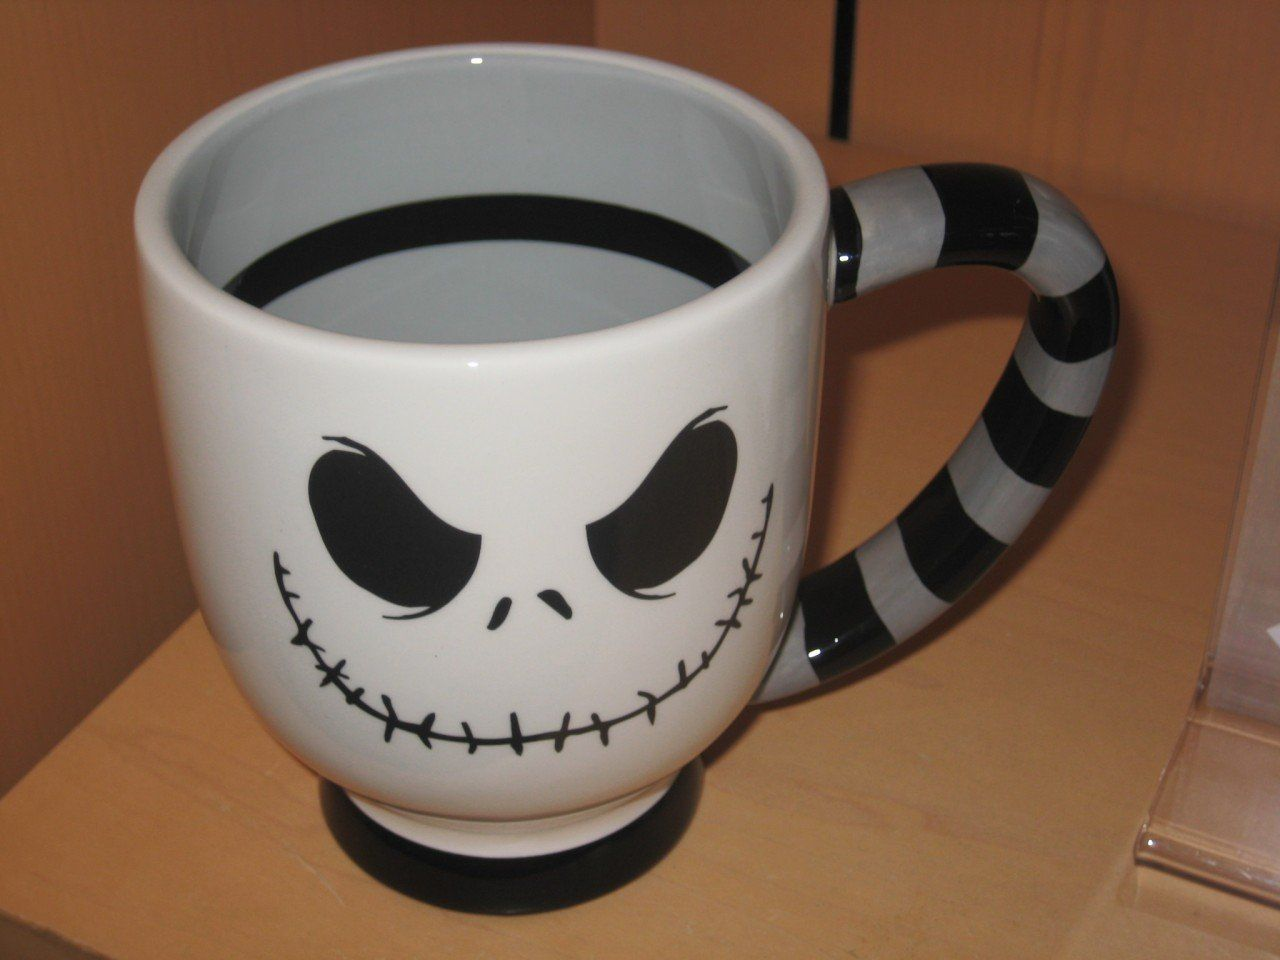 Amazon.com: Disney Jack Skellington Ceramic Mug - Nightmare Before ...